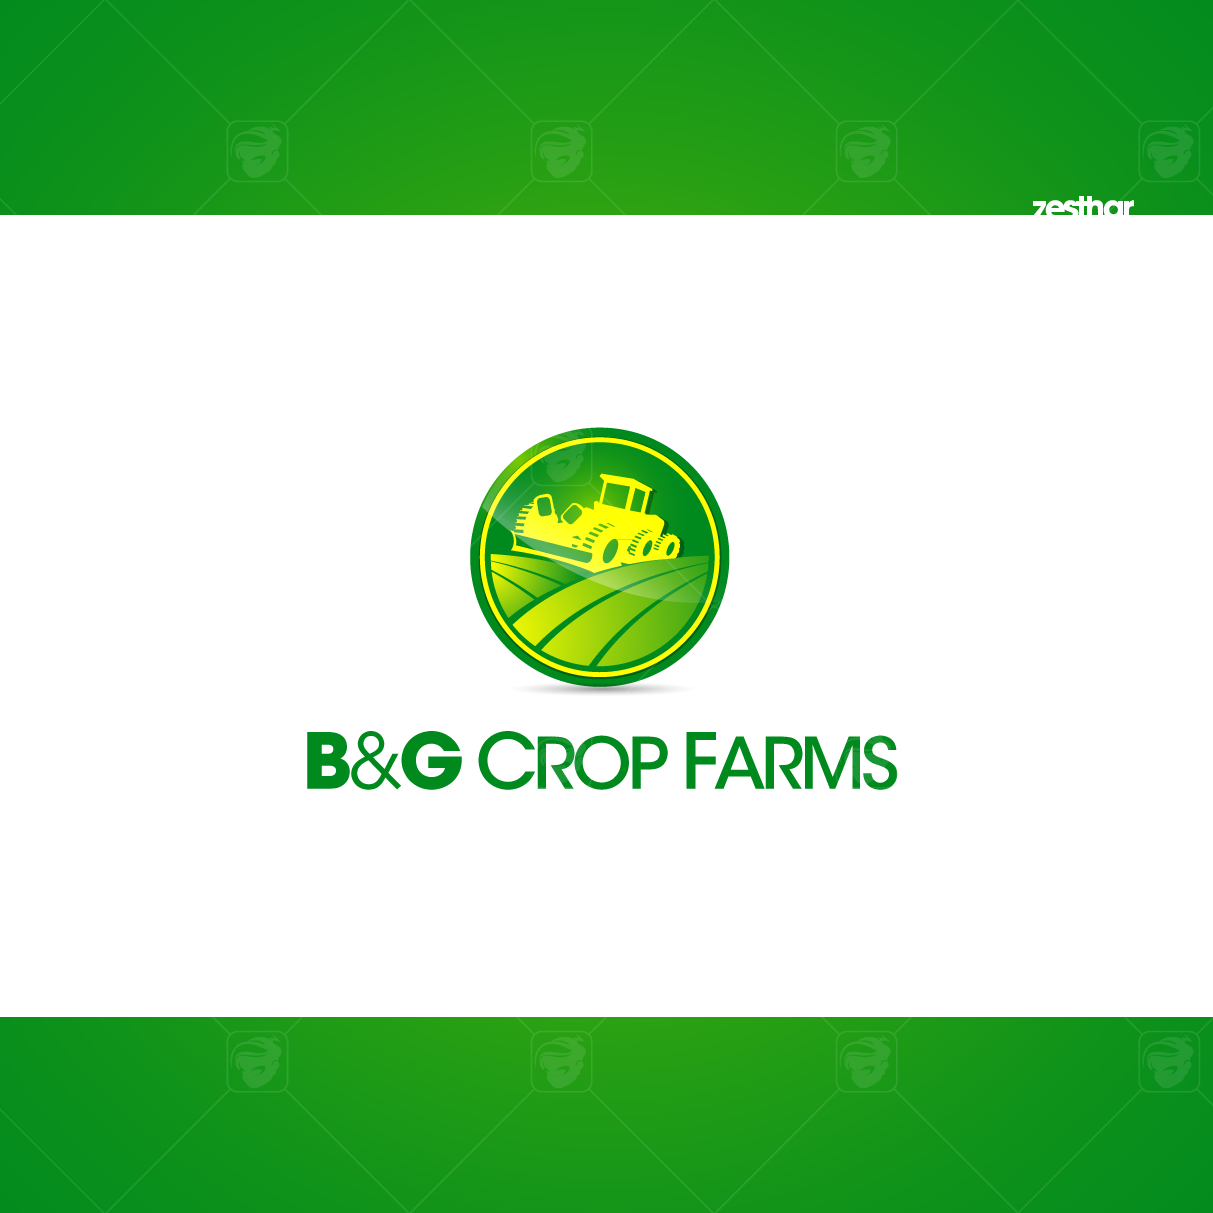 Logo Design by zesthar - Entry No. 42 in the Logo Design Contest Artistic Logo Design for B & G Crop Farms.